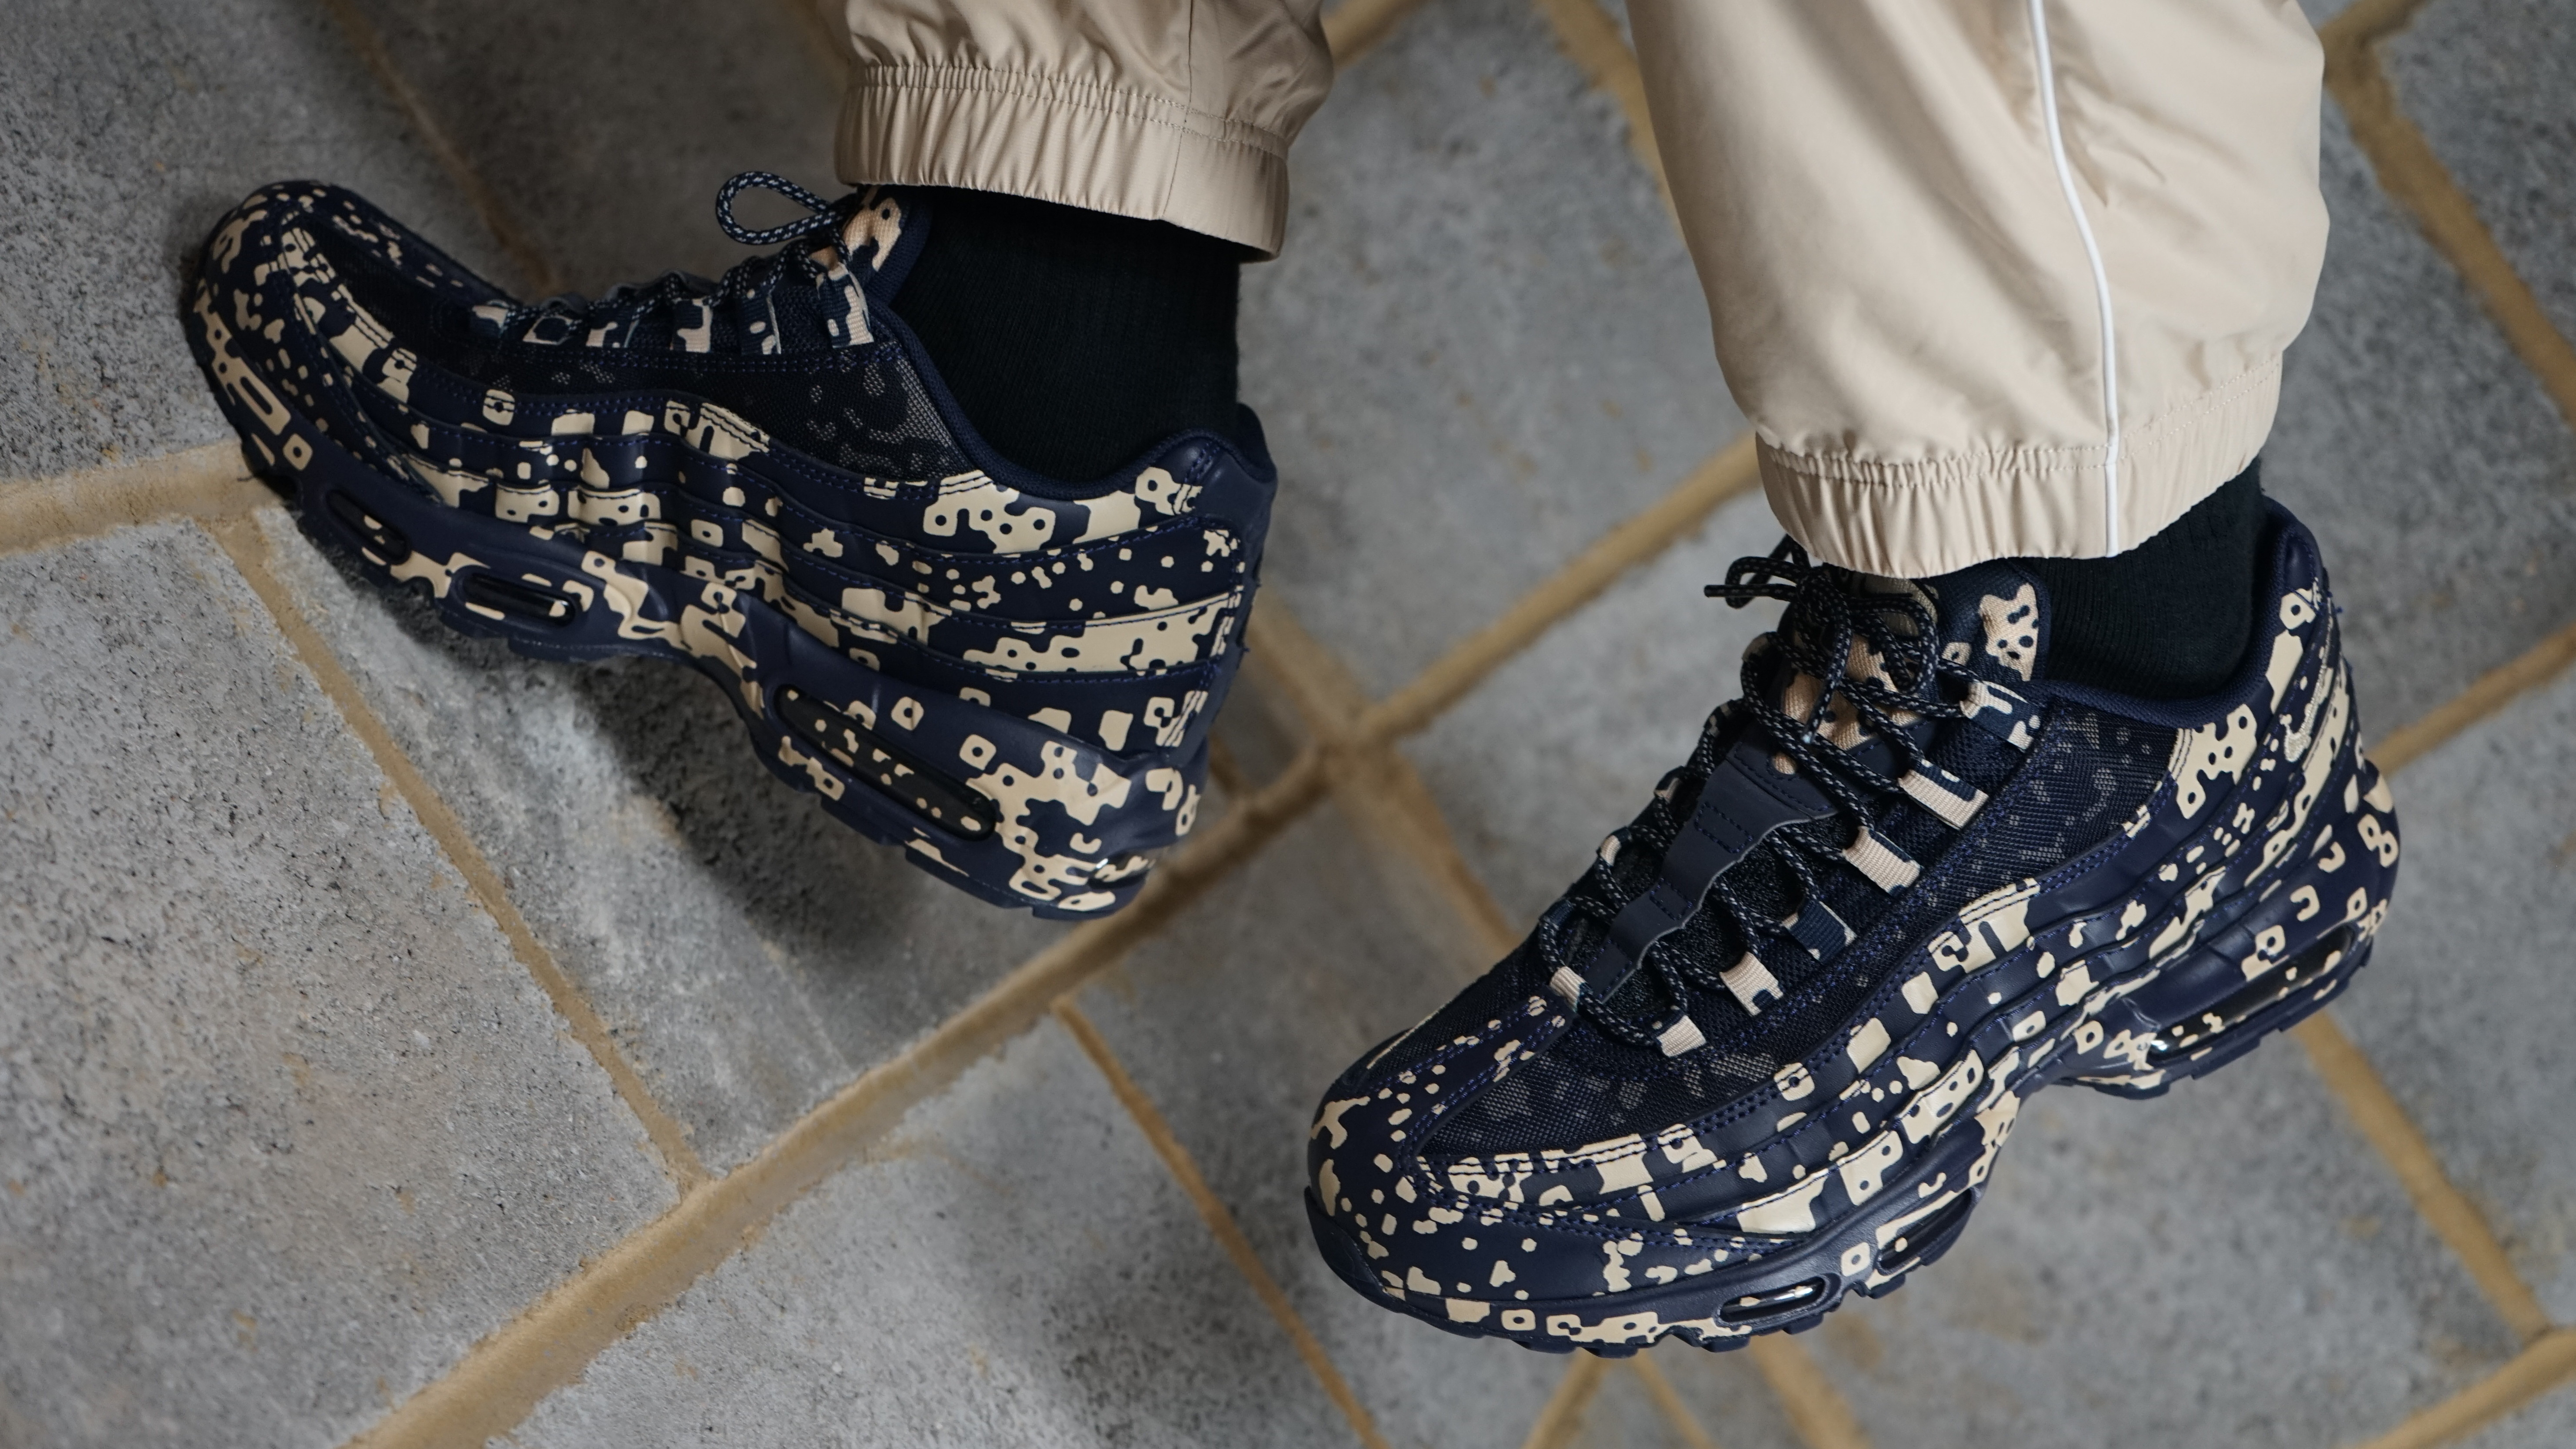 hot sales 364de 5af77 Cav Empt x Nike Air Max 95  White Stealth Black   Blackened Blue Desert  Ore  Release Date   Sole Collector